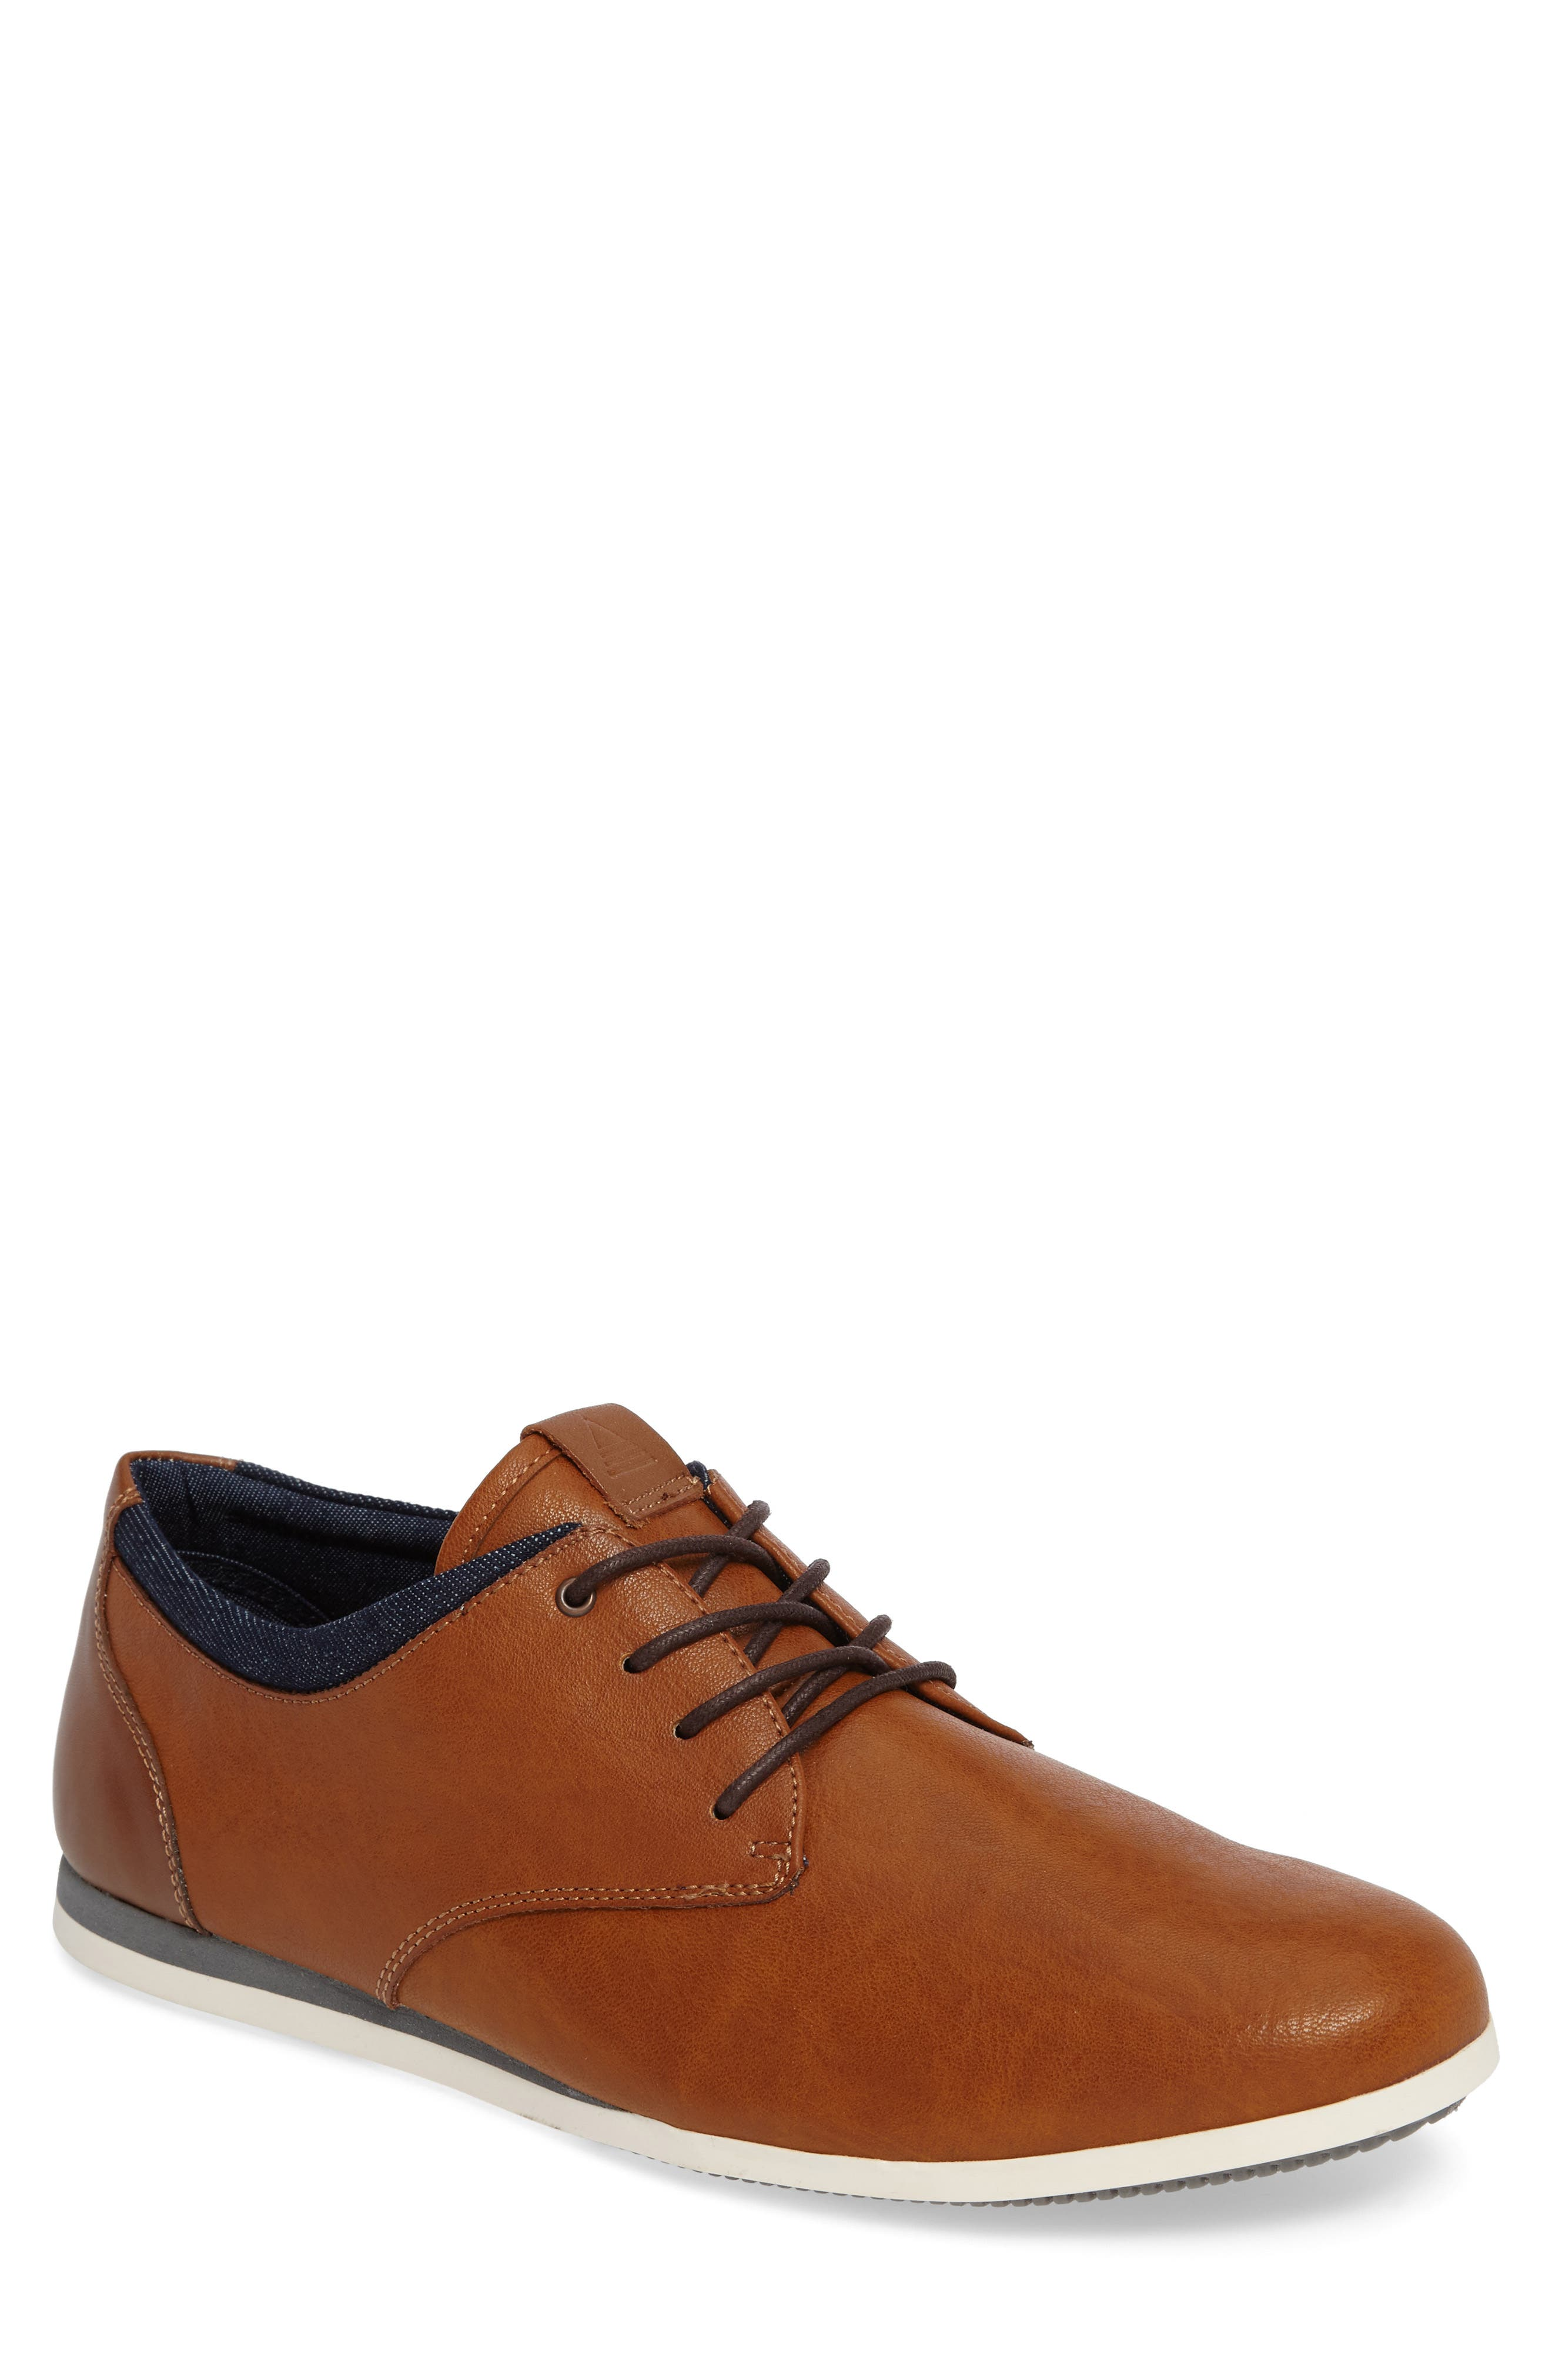 Alternate Image 1 Selected - ALDO Aauwen Plain Toe Derby (Men)